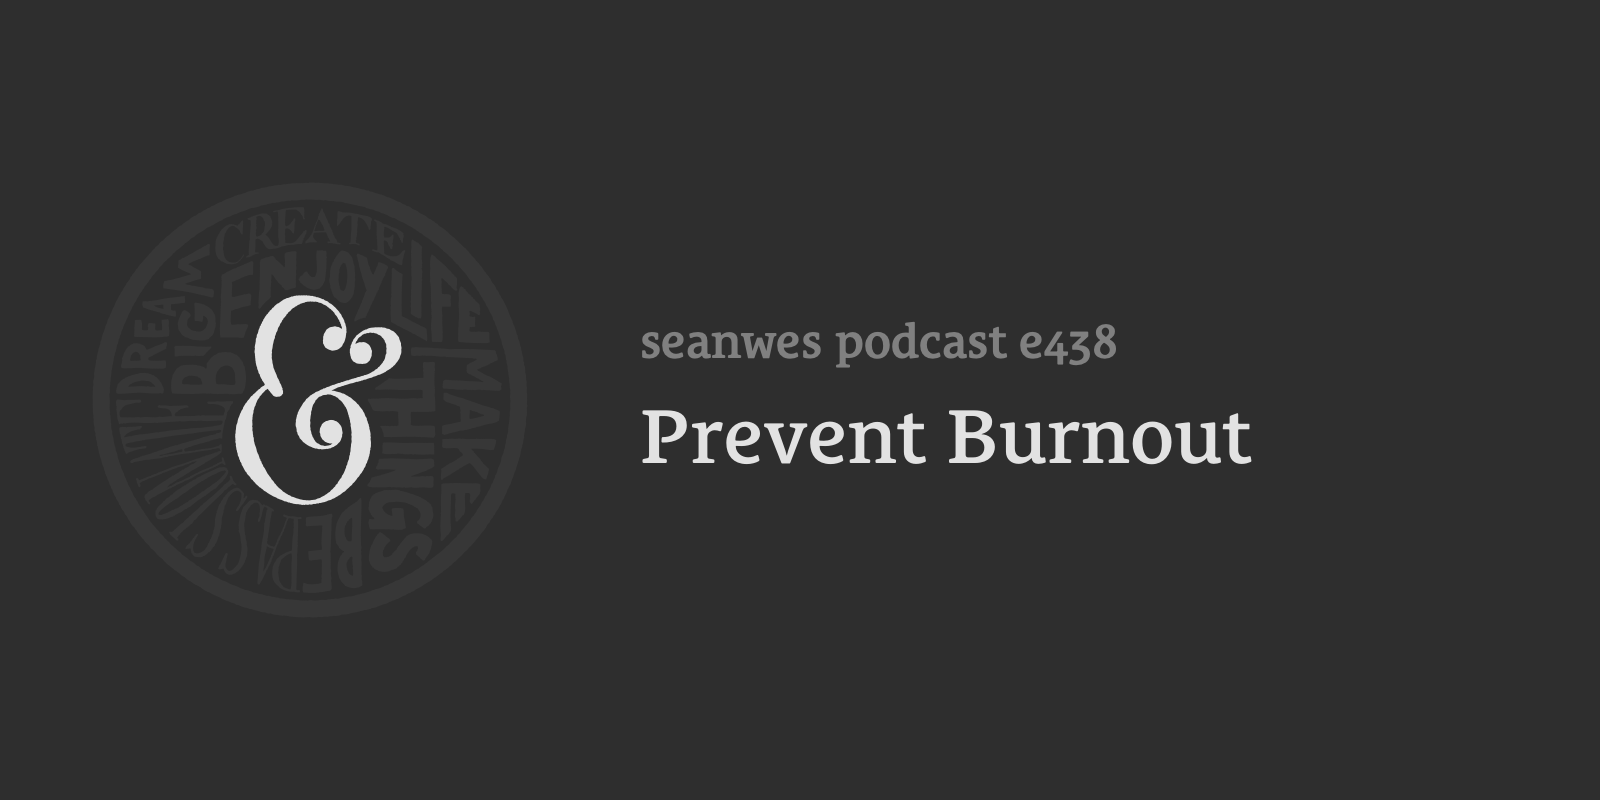 seanwes podcast: Prevent Burnout